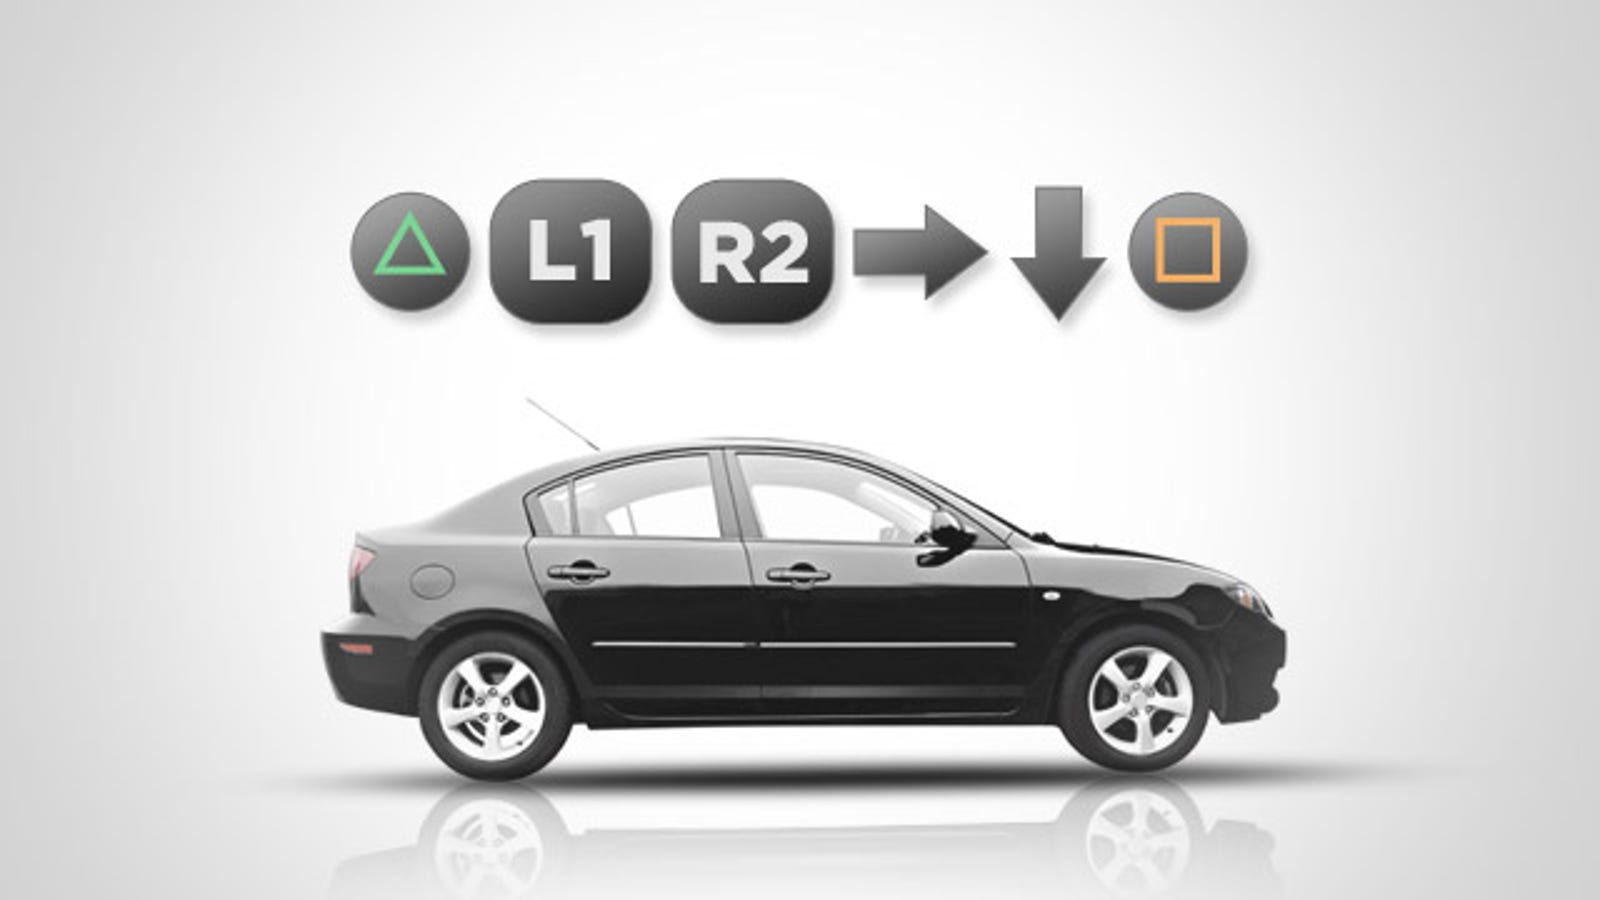 Hack Your Ride Cheat Codes And Workarounds For Cars Tech 2007 Toyota Prius Engine Diagram Annoyances